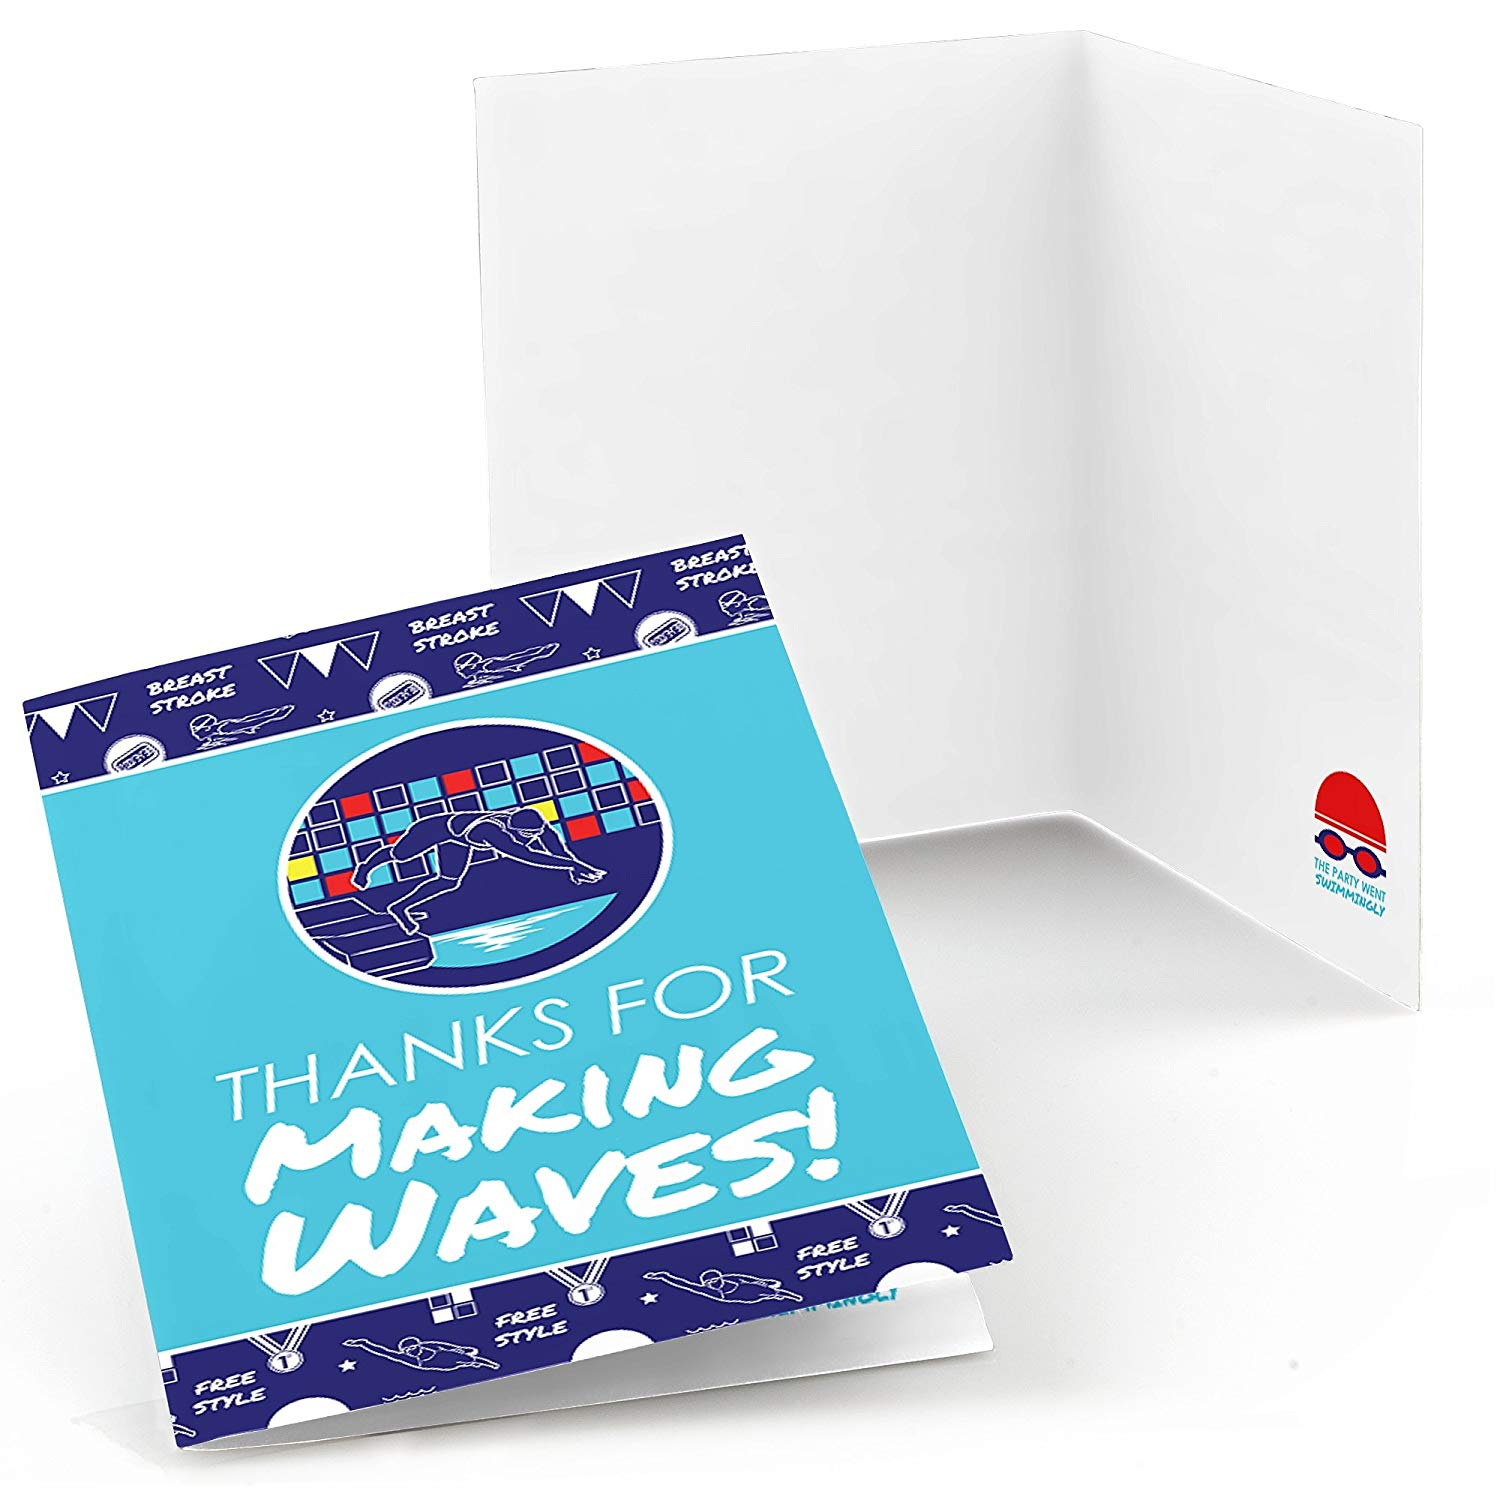 Making Waves - Swim Team - Swimming Party or Birthday Party Thank You Cards (8 count)